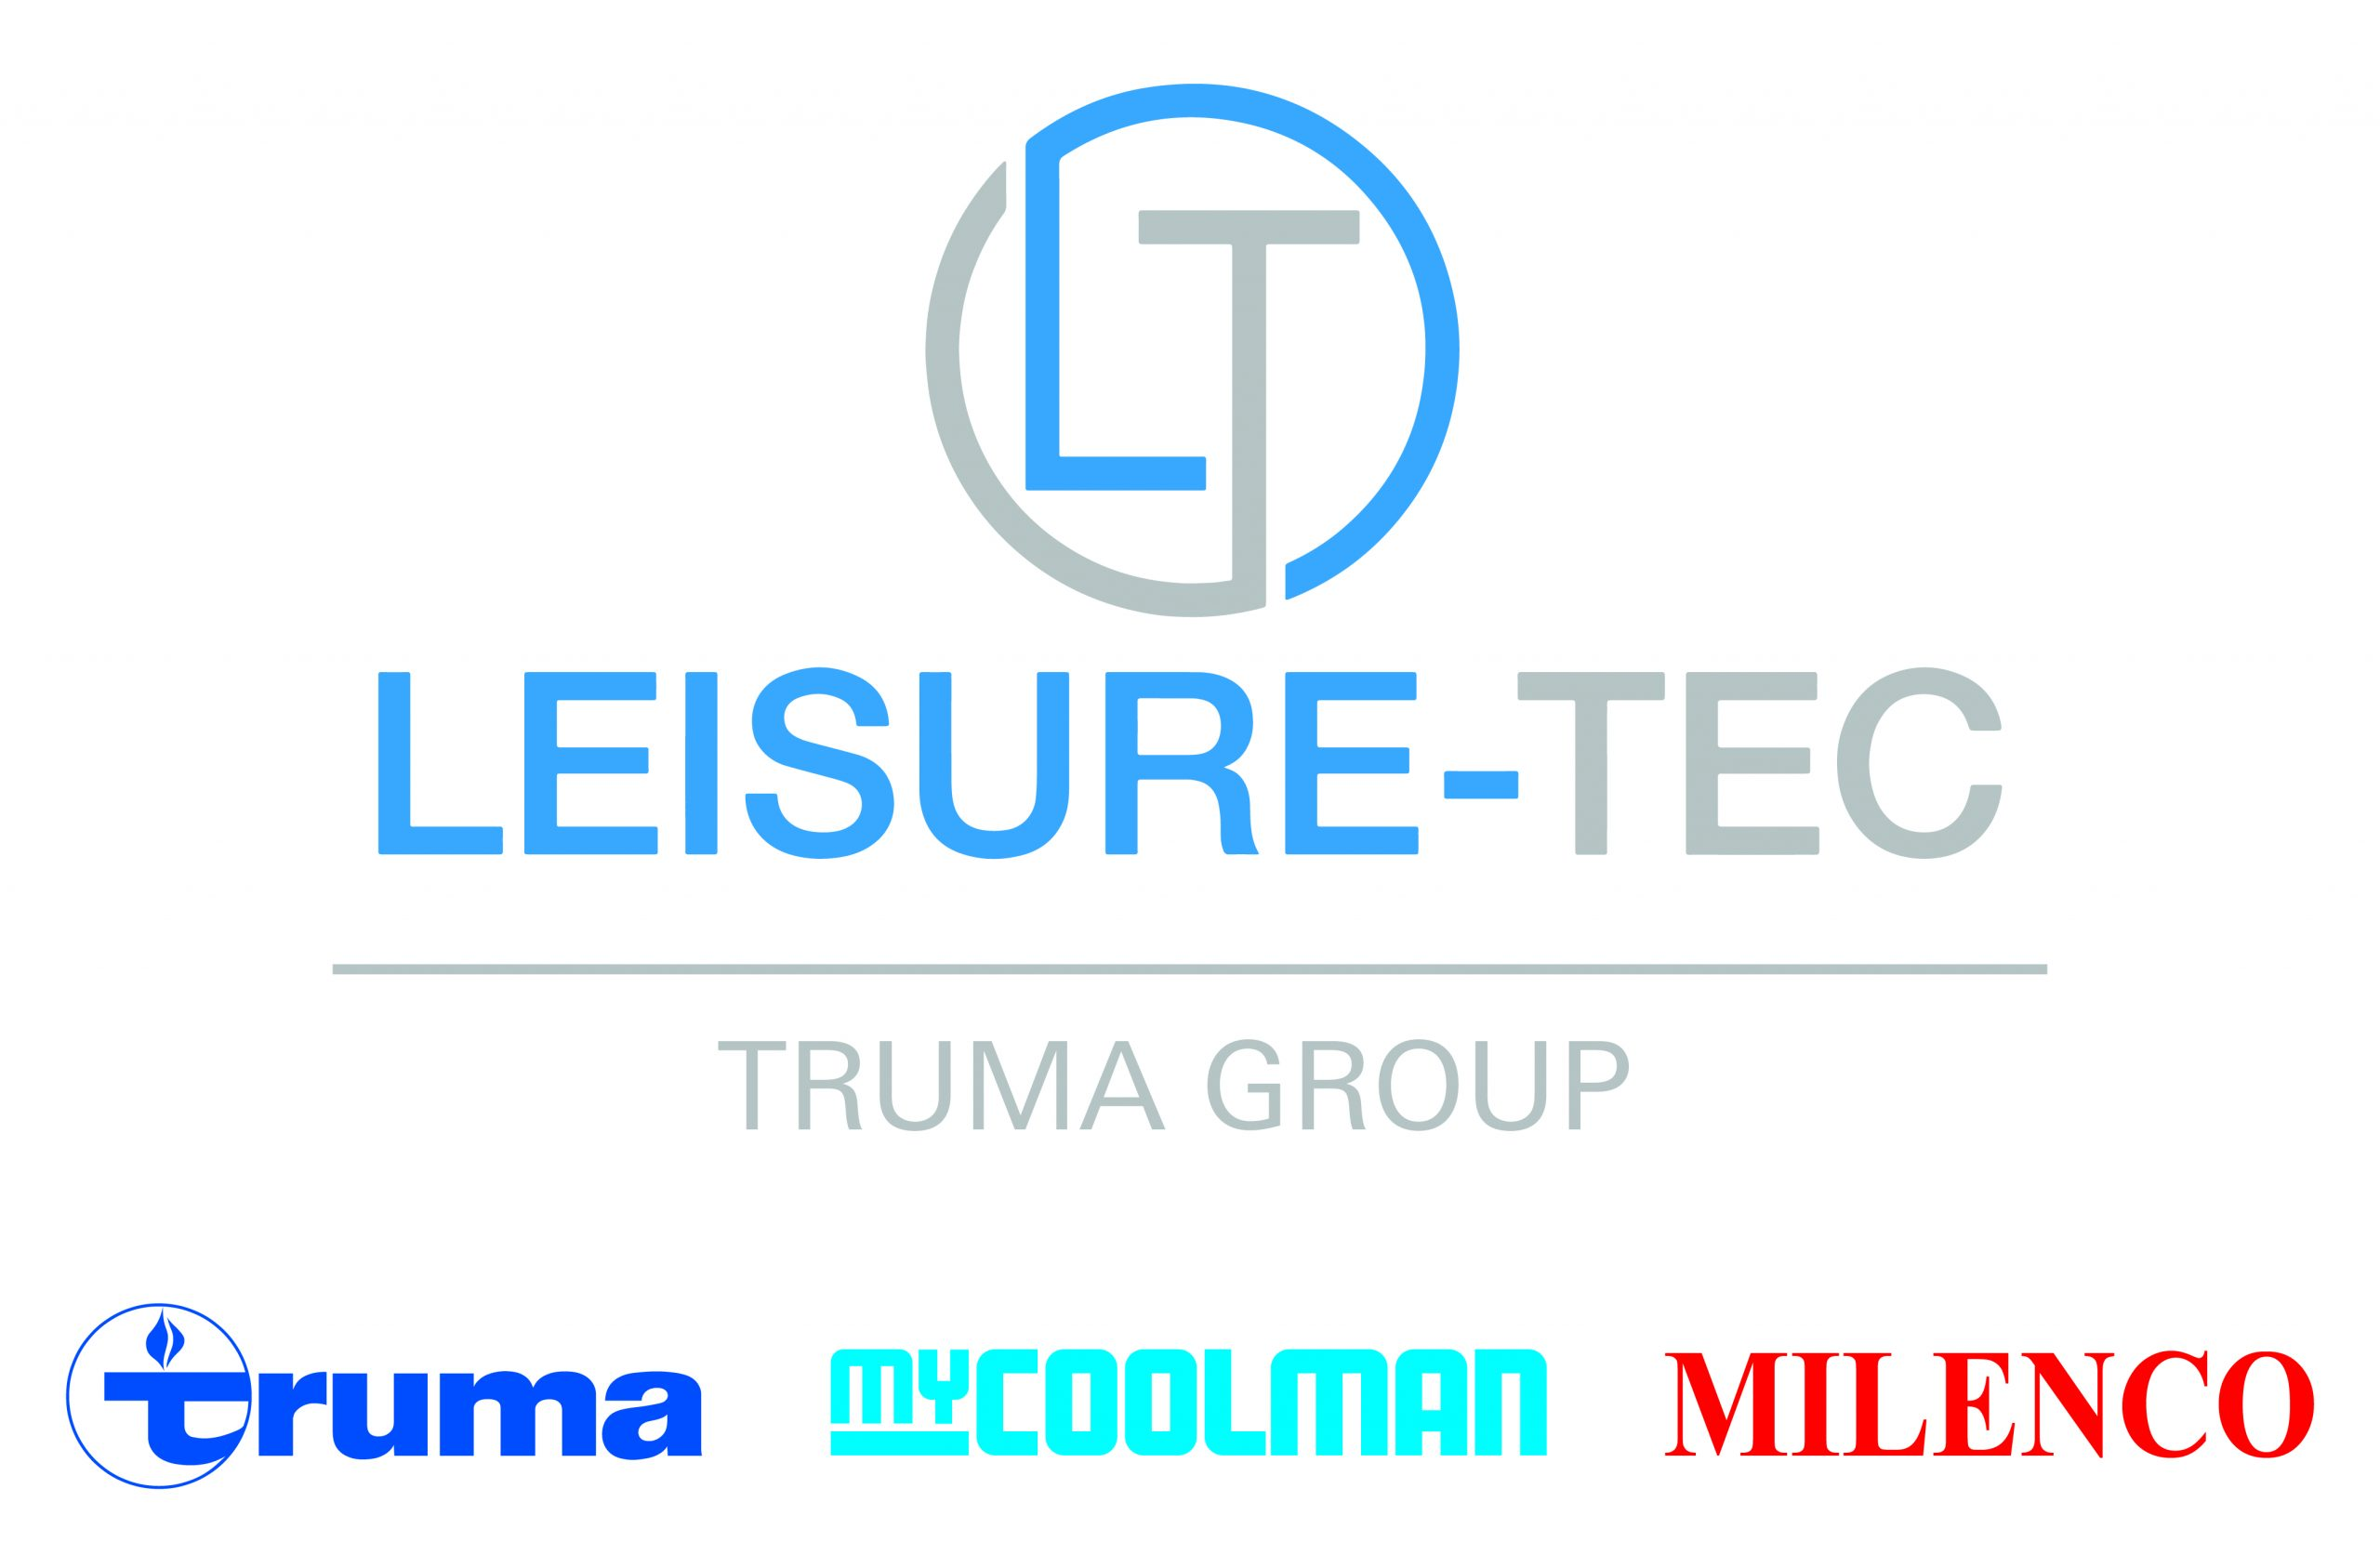 leisuretec trumagroup logo col 002 2